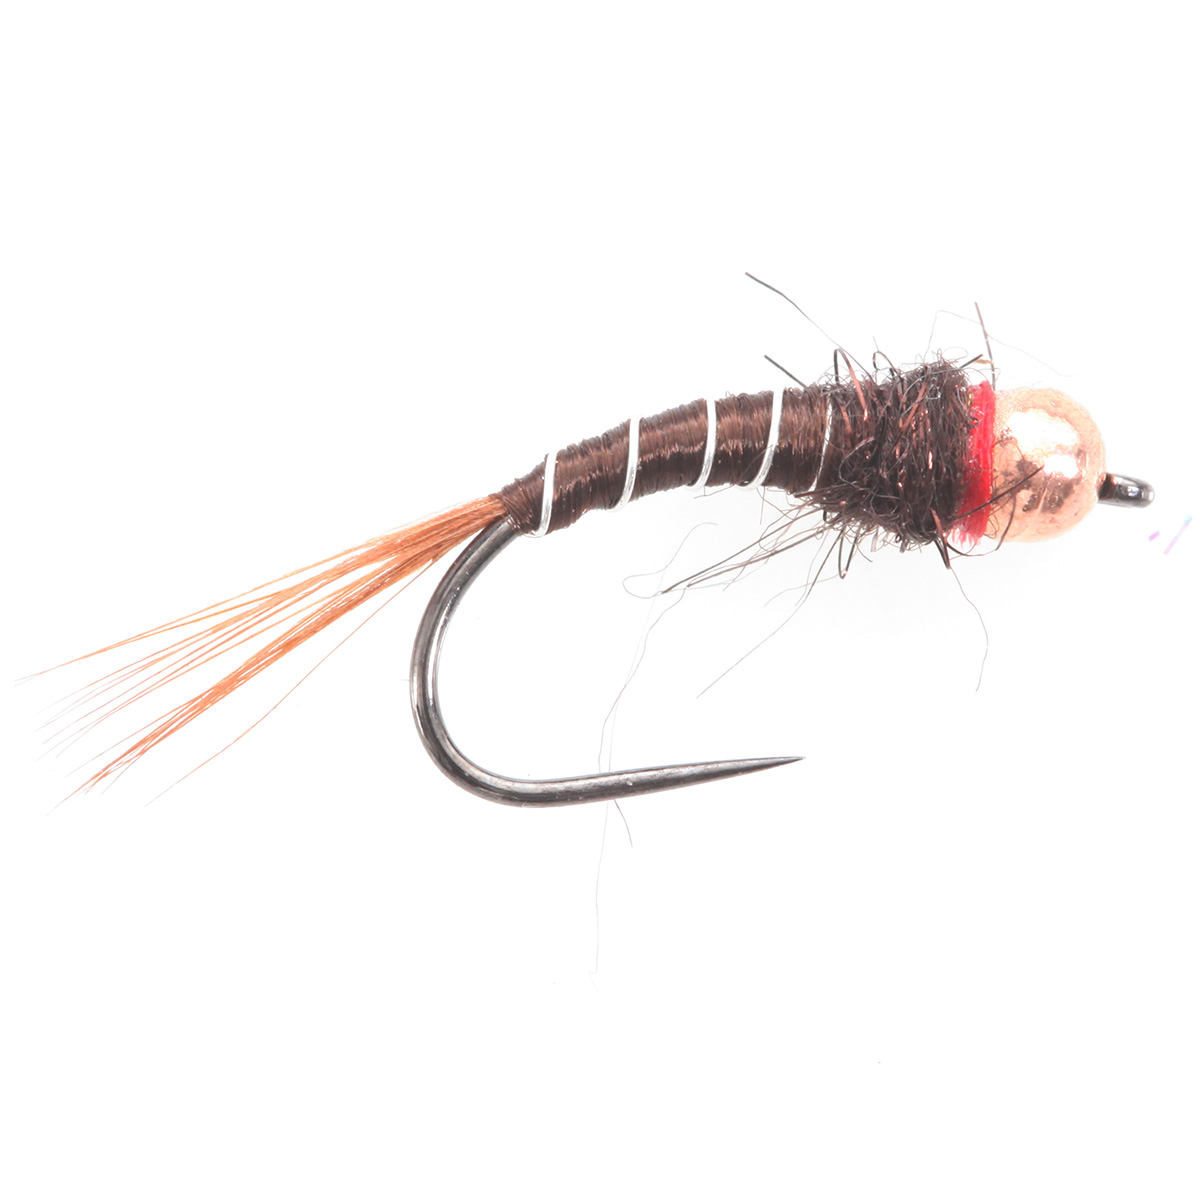 Tungsten bh copper ribbed brown tungsten beads nymphs for Ebay fly fishing